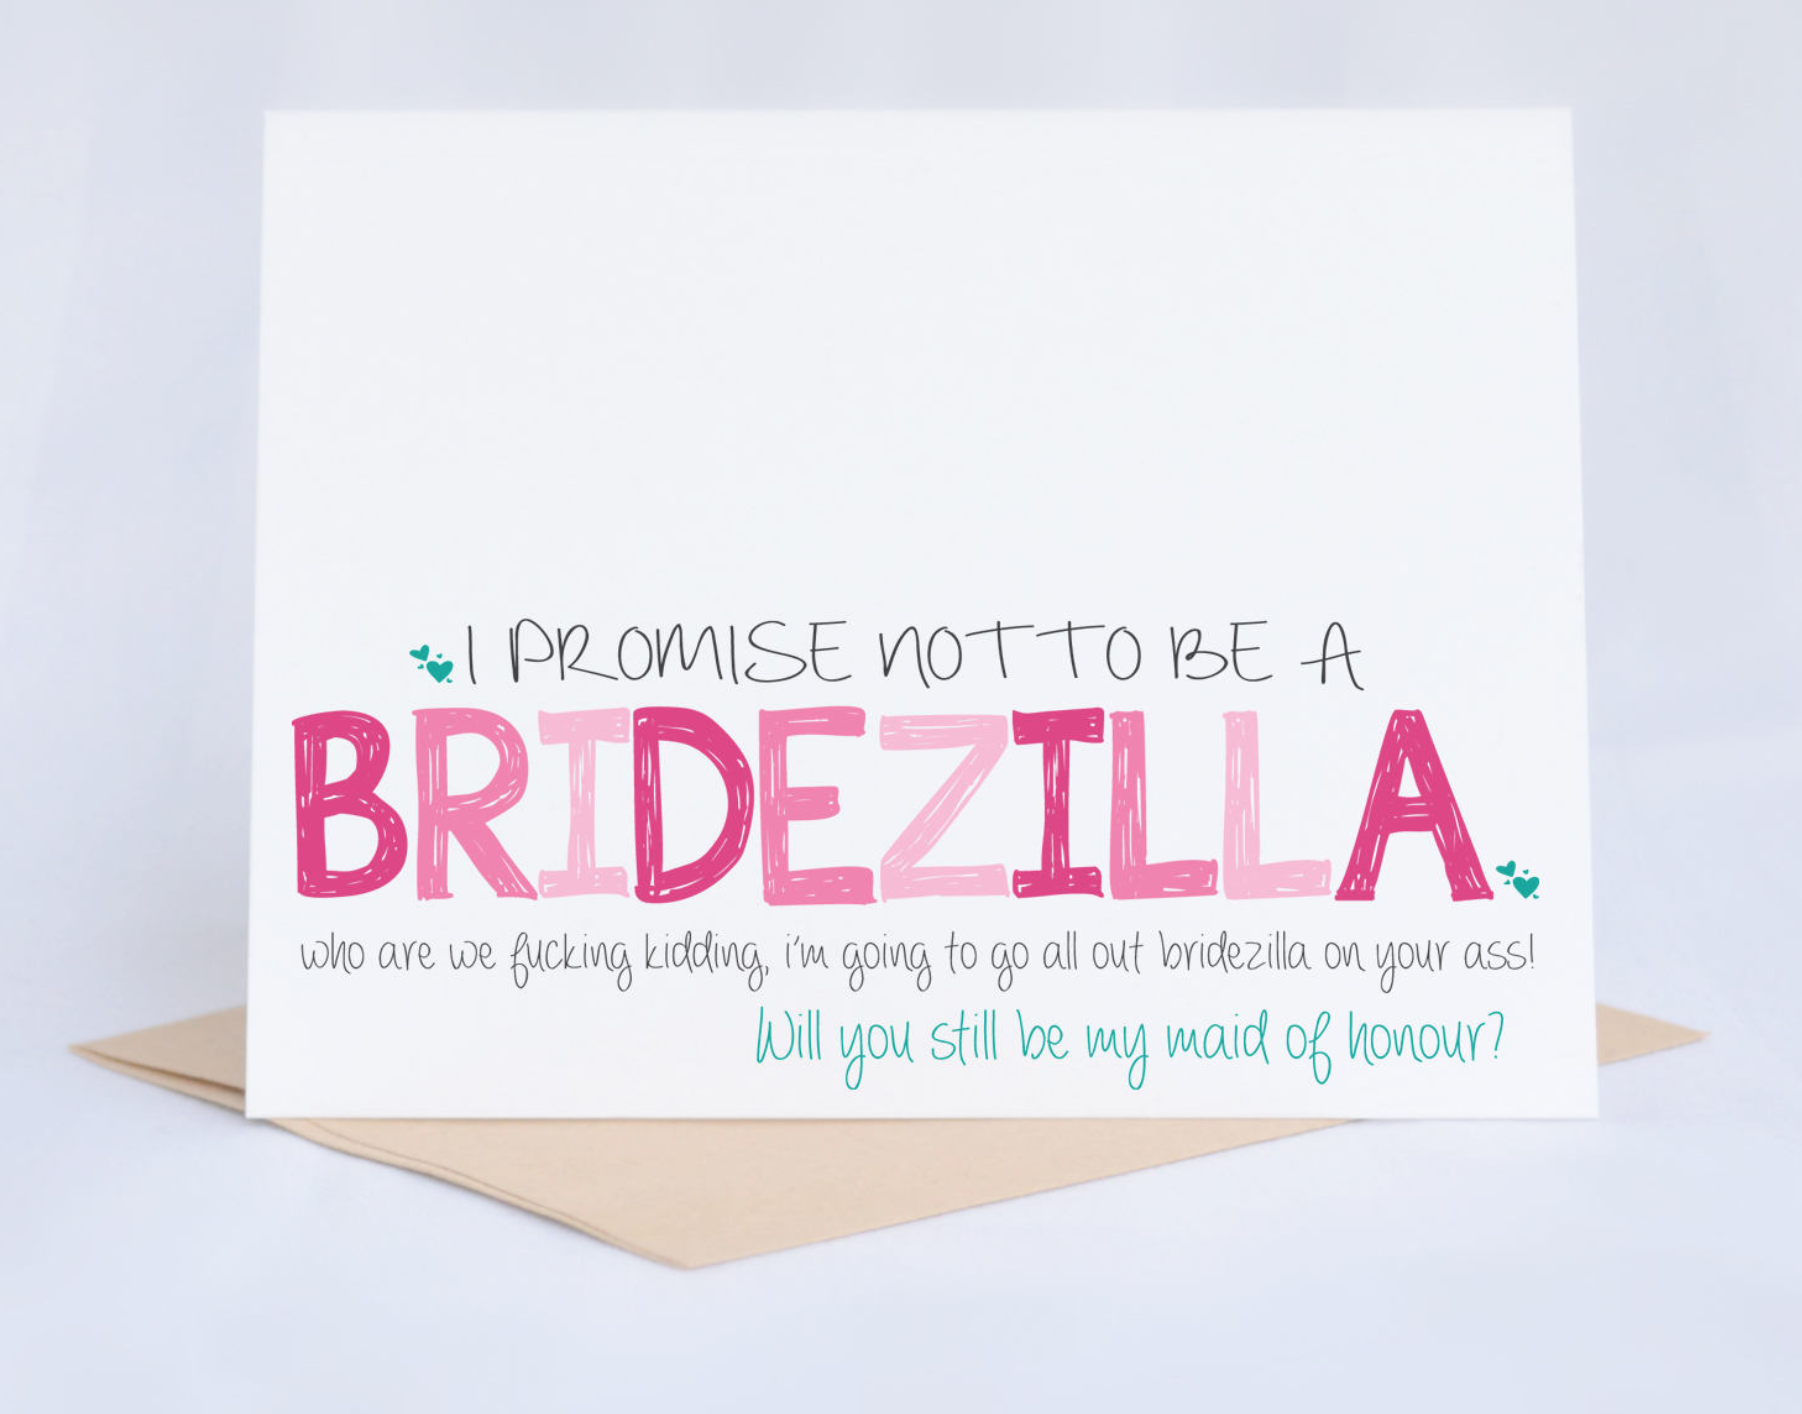 Don't Buy Into Bridezilla Culture:  - It's 2018 - why are we still shaming women for having strong opinions?